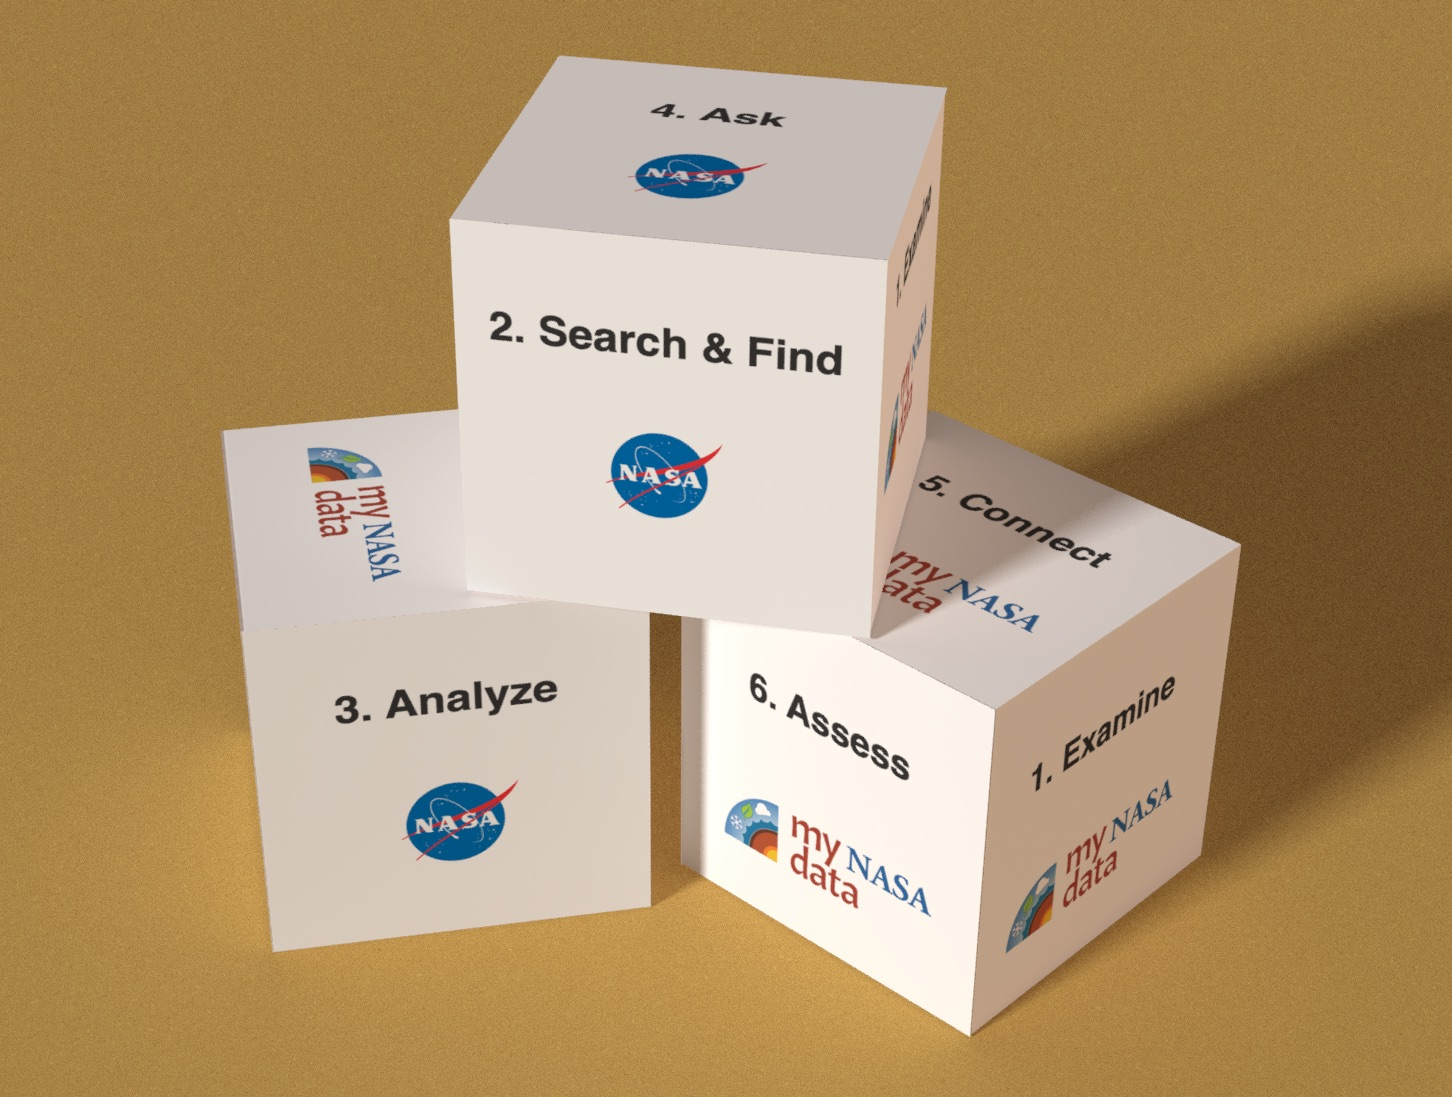 Image of three stacked data cubes showing text on sides of cubes.